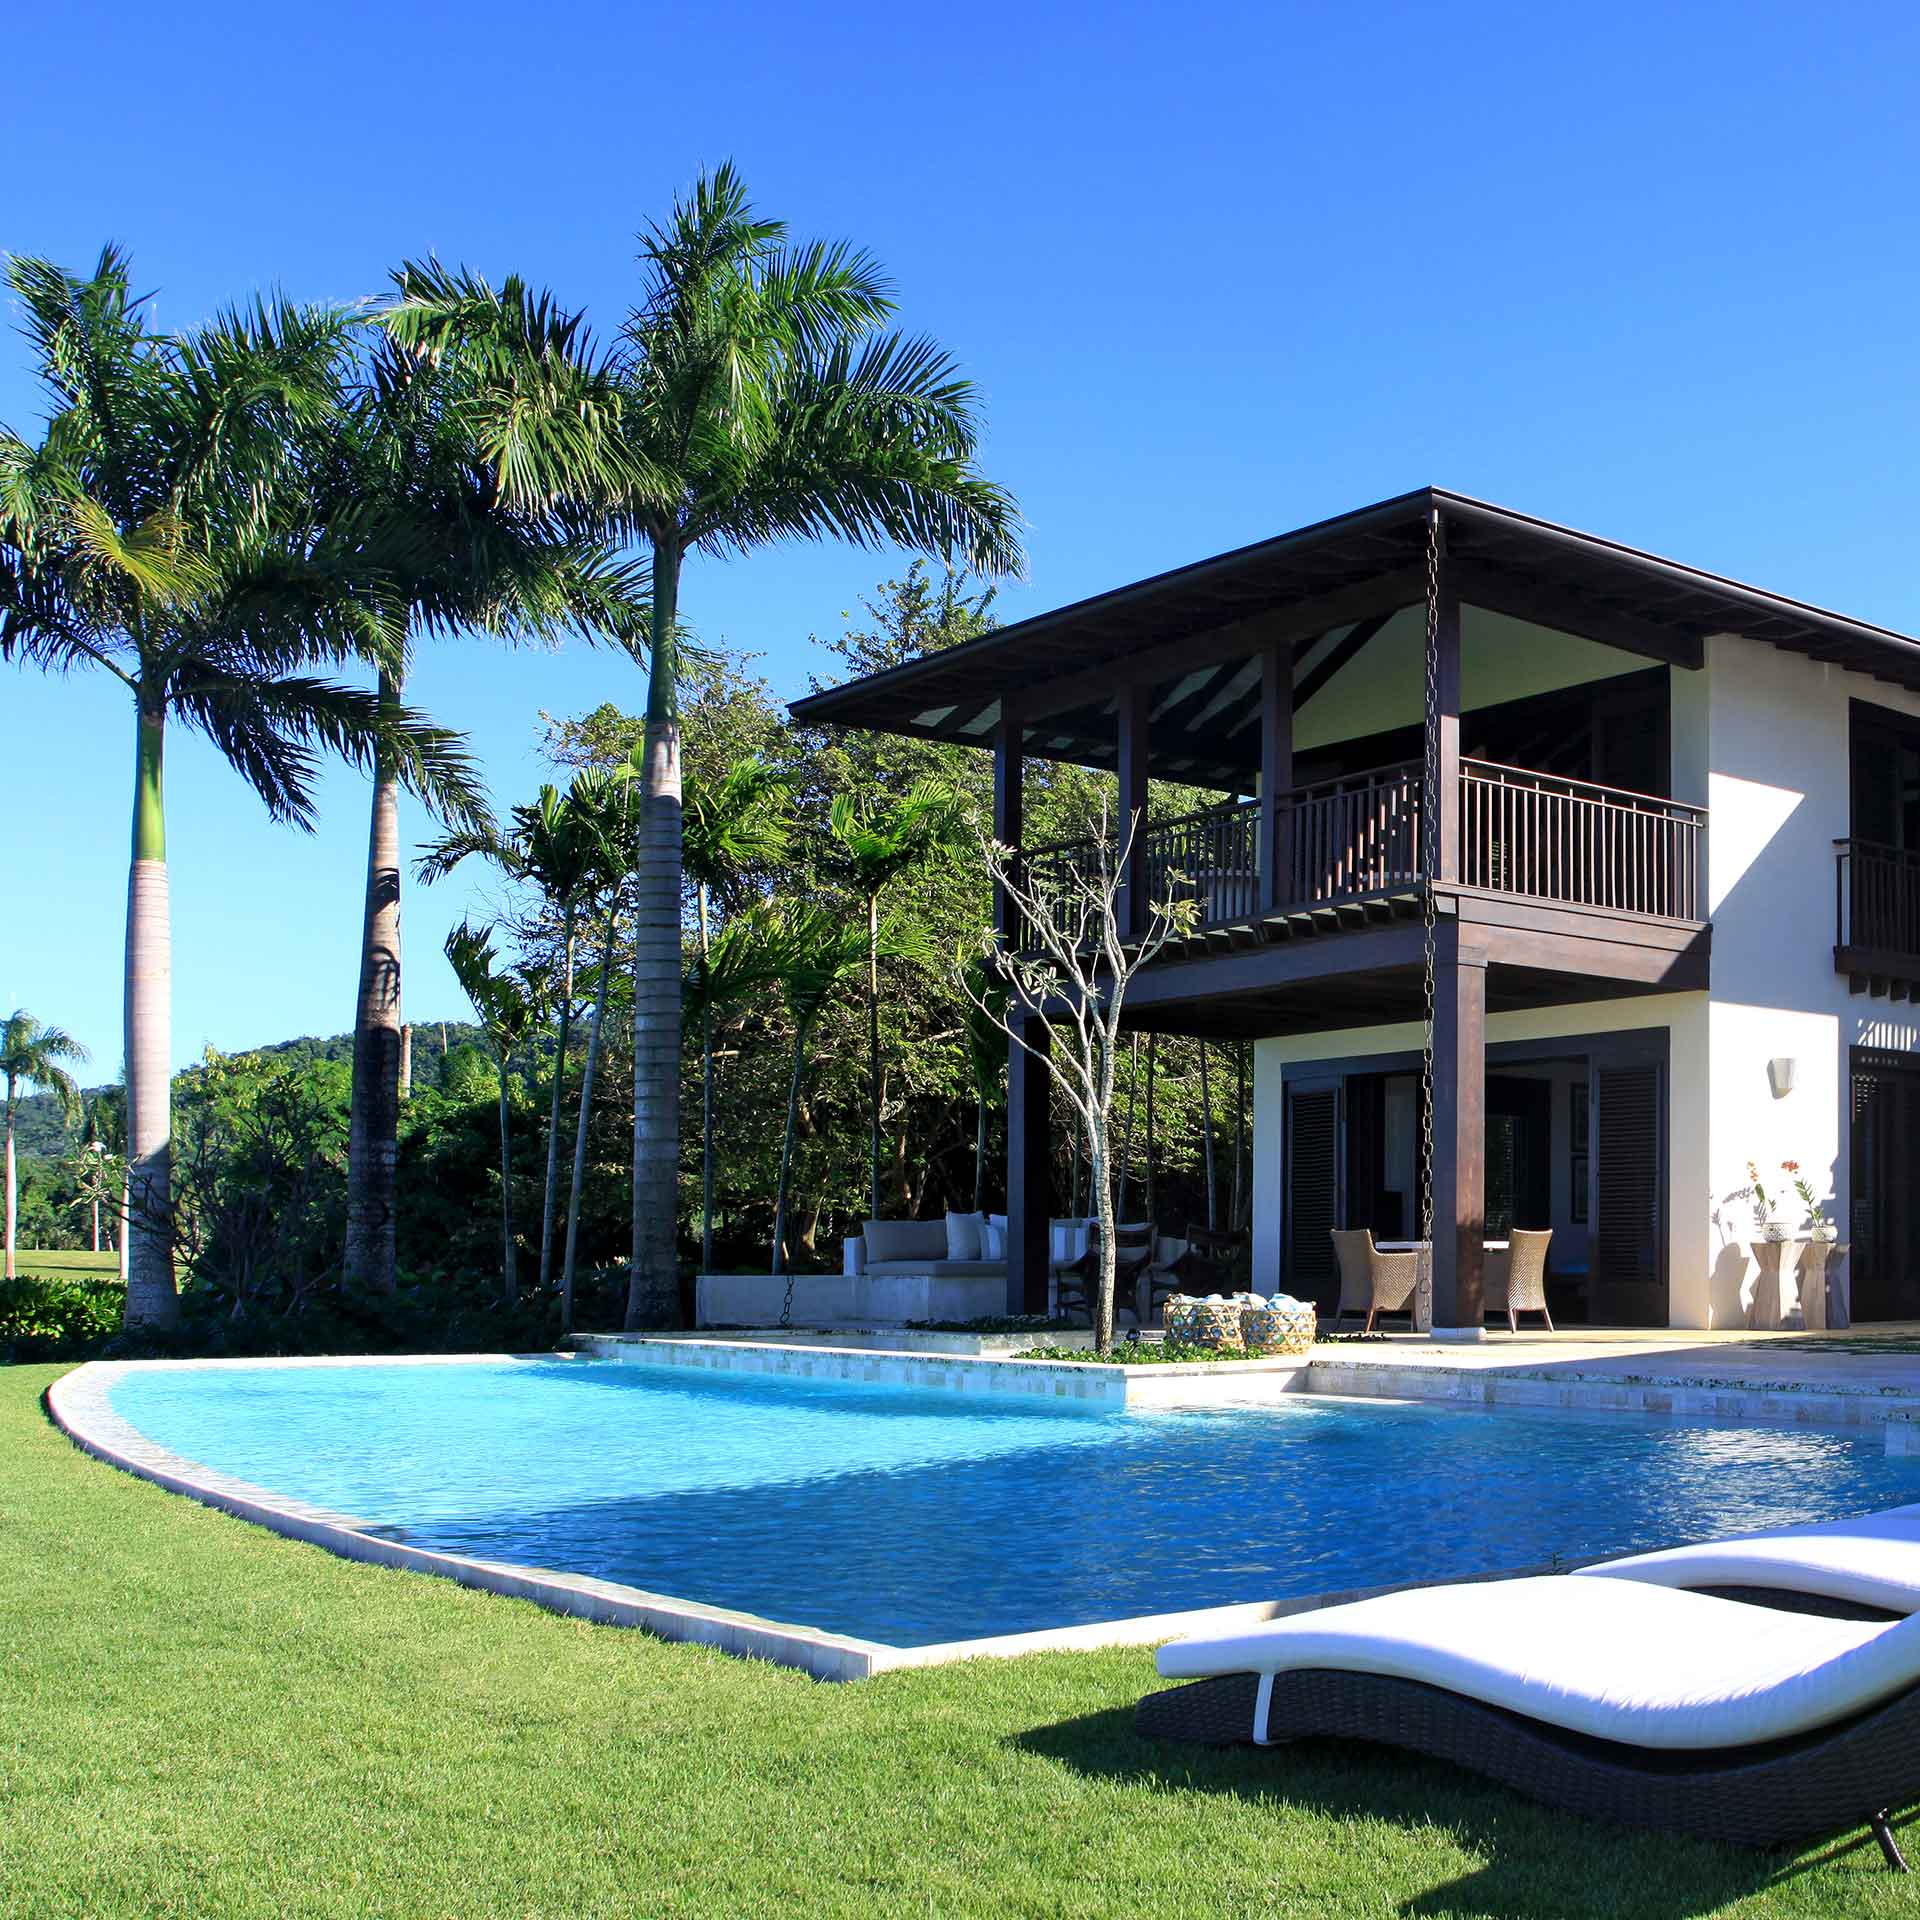 View of villa at Playa Grande | Luxury resort marketing | Dolphin Capital Investors